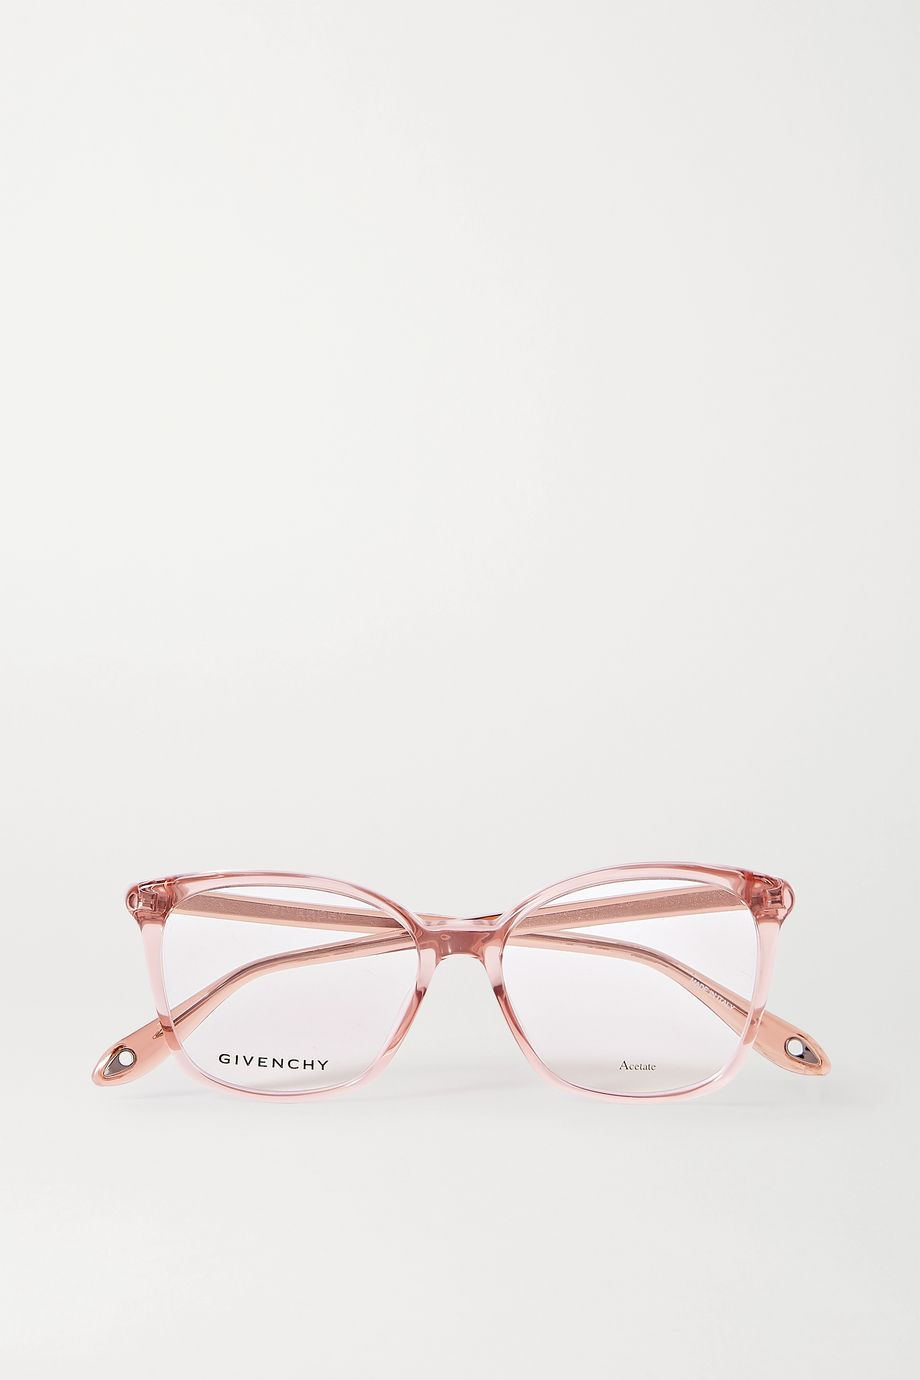 Givenchy Round-frame acetate optical glasses